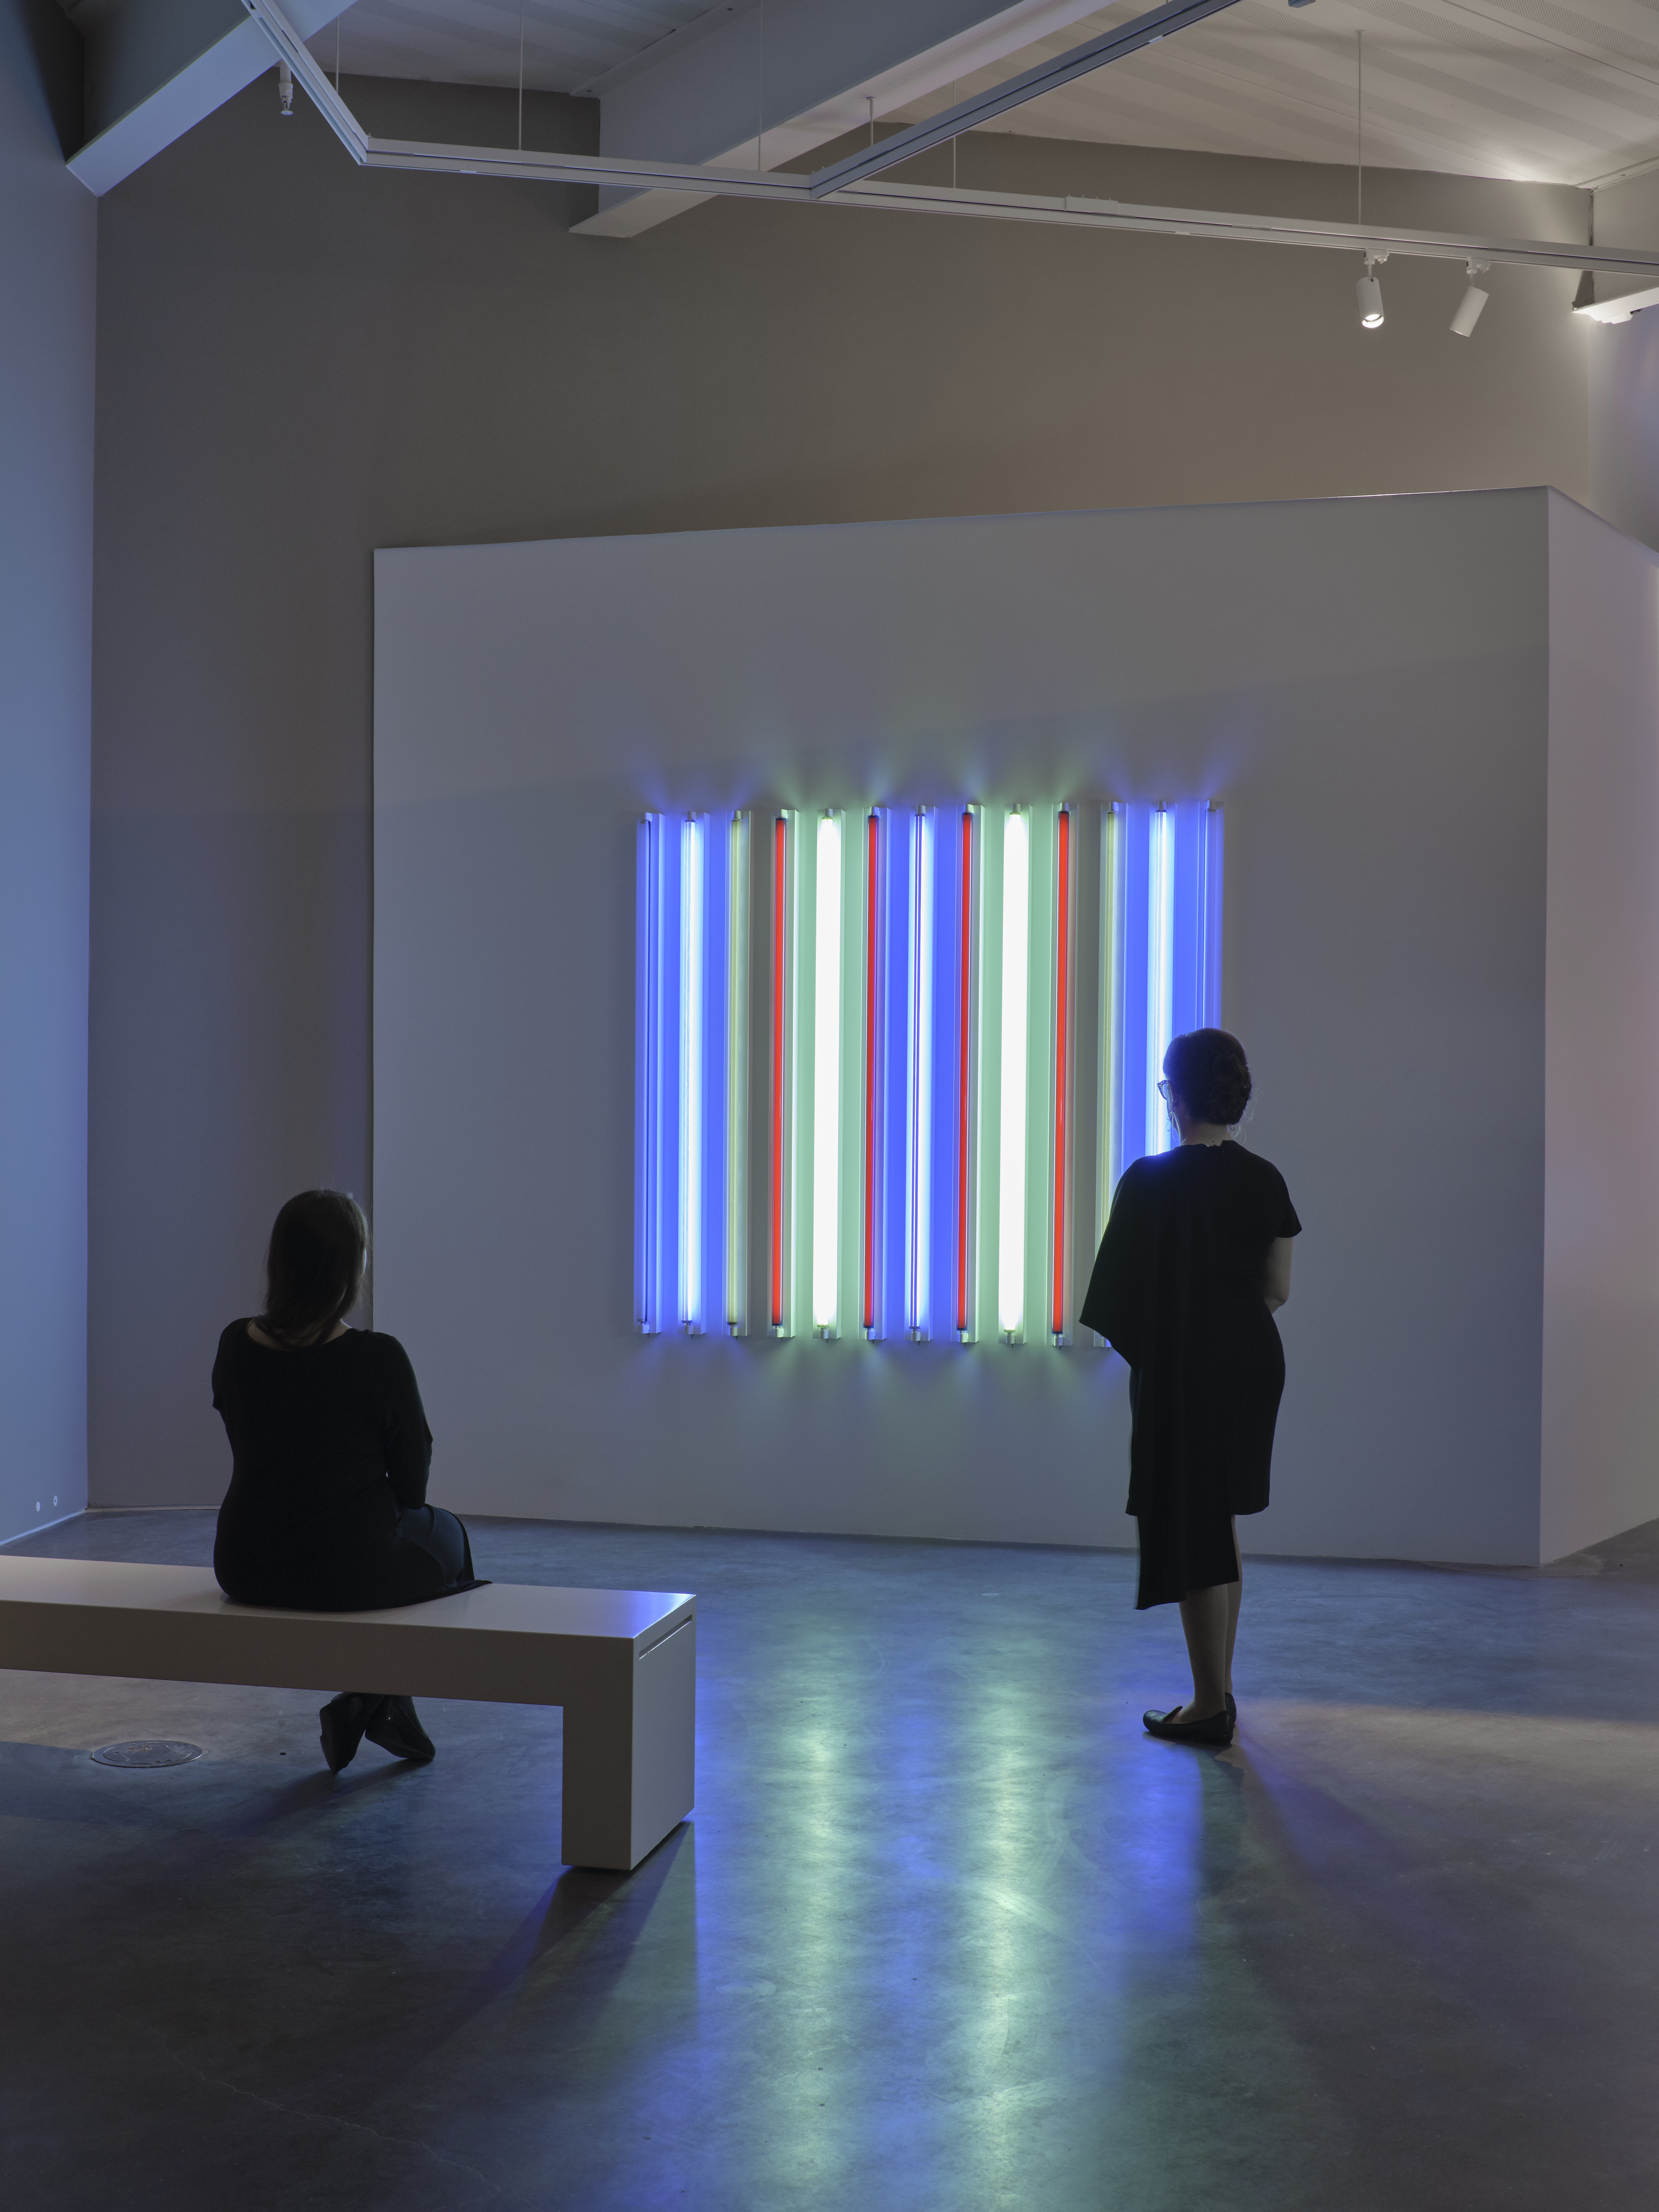 Two people, one seated on a bench and the other standing, observe a light sculpture in a contemporary art gallery